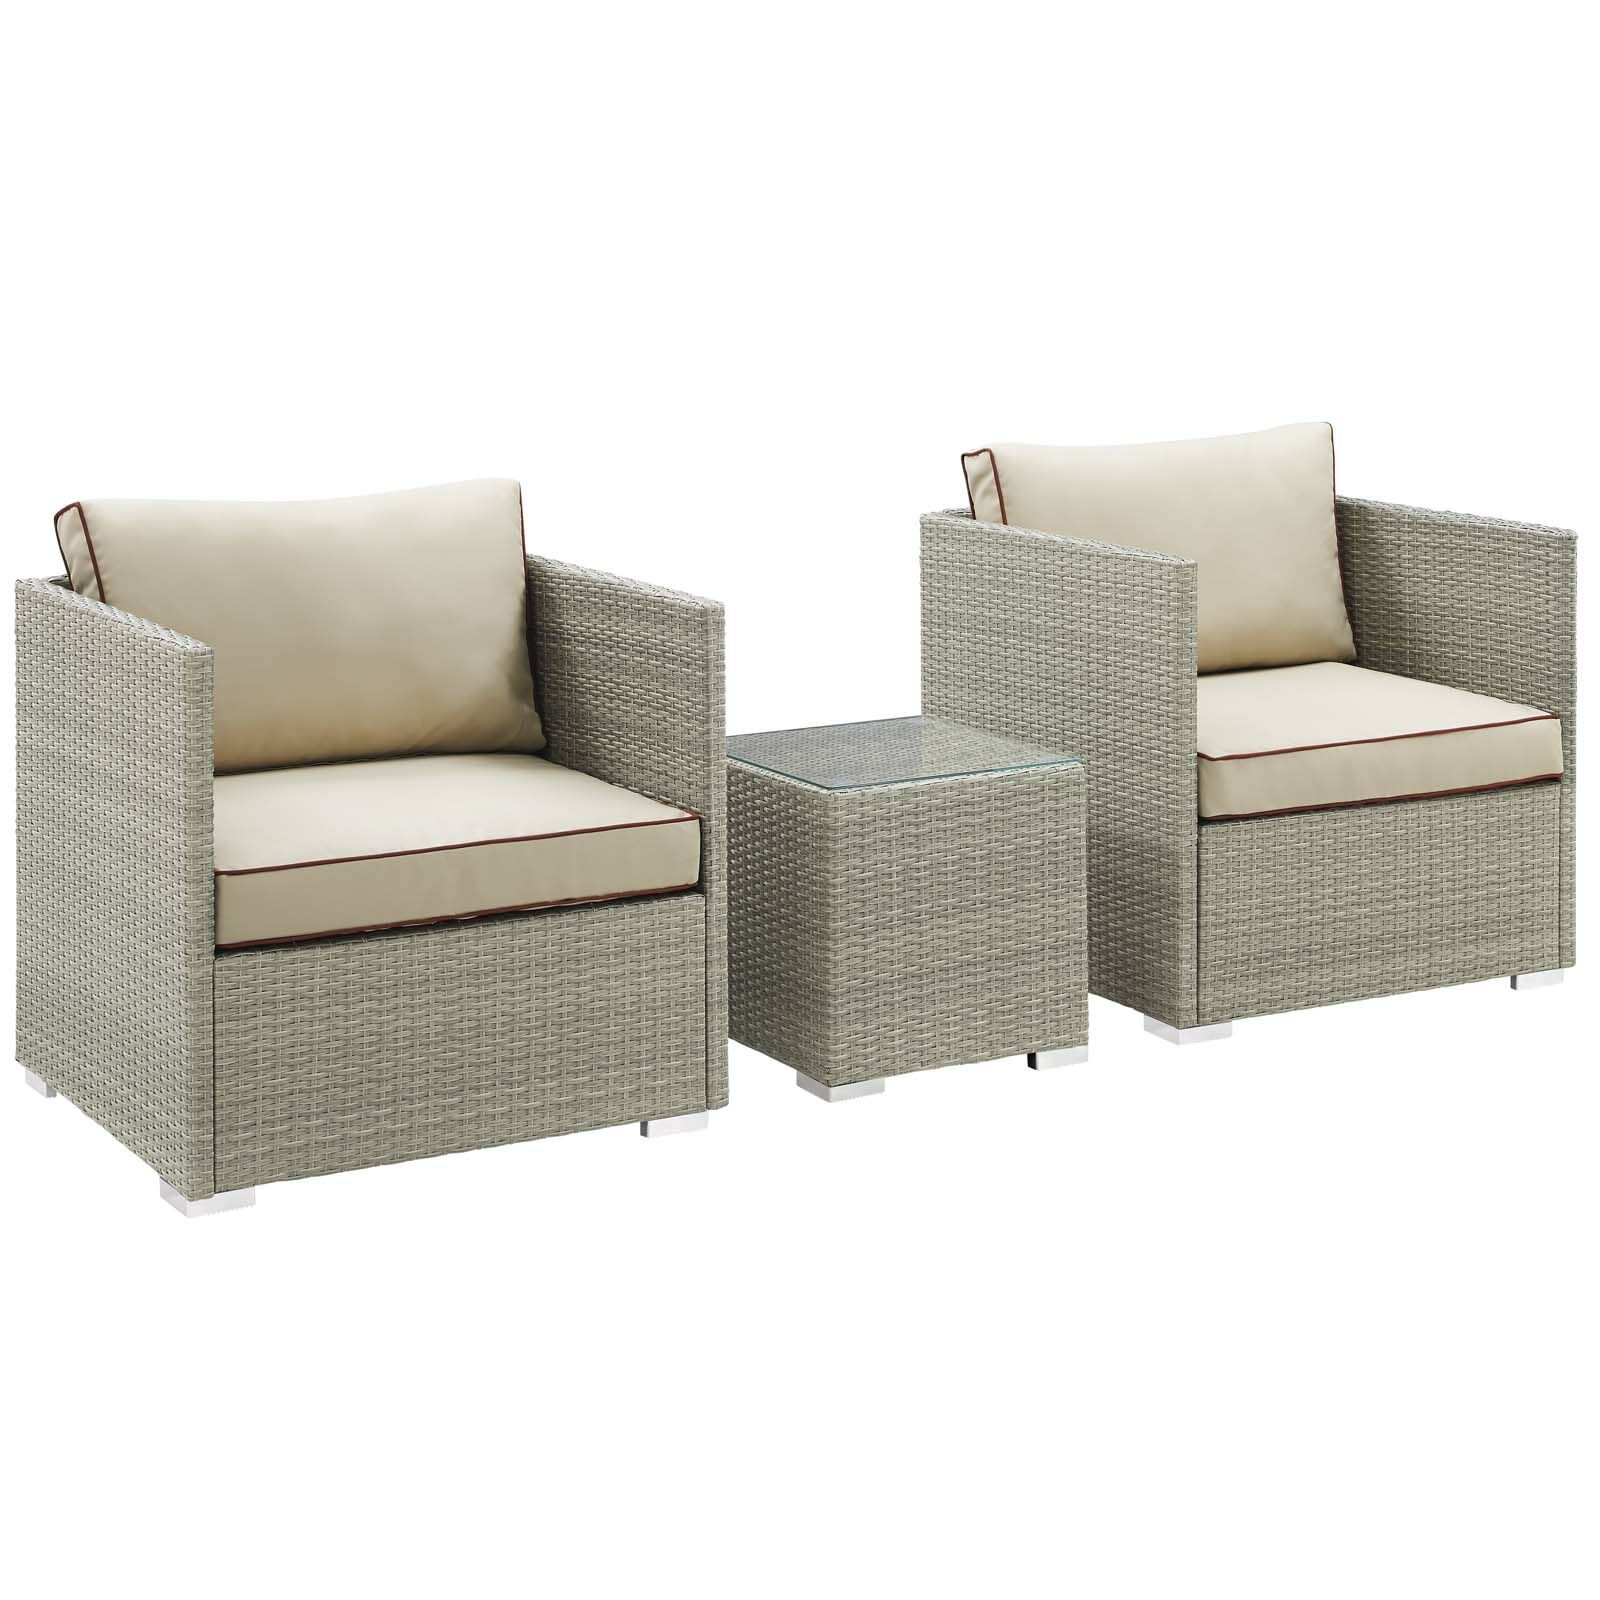 Heinrich 3 Piece Conversation Set with Cushions Cushion Color: Beige